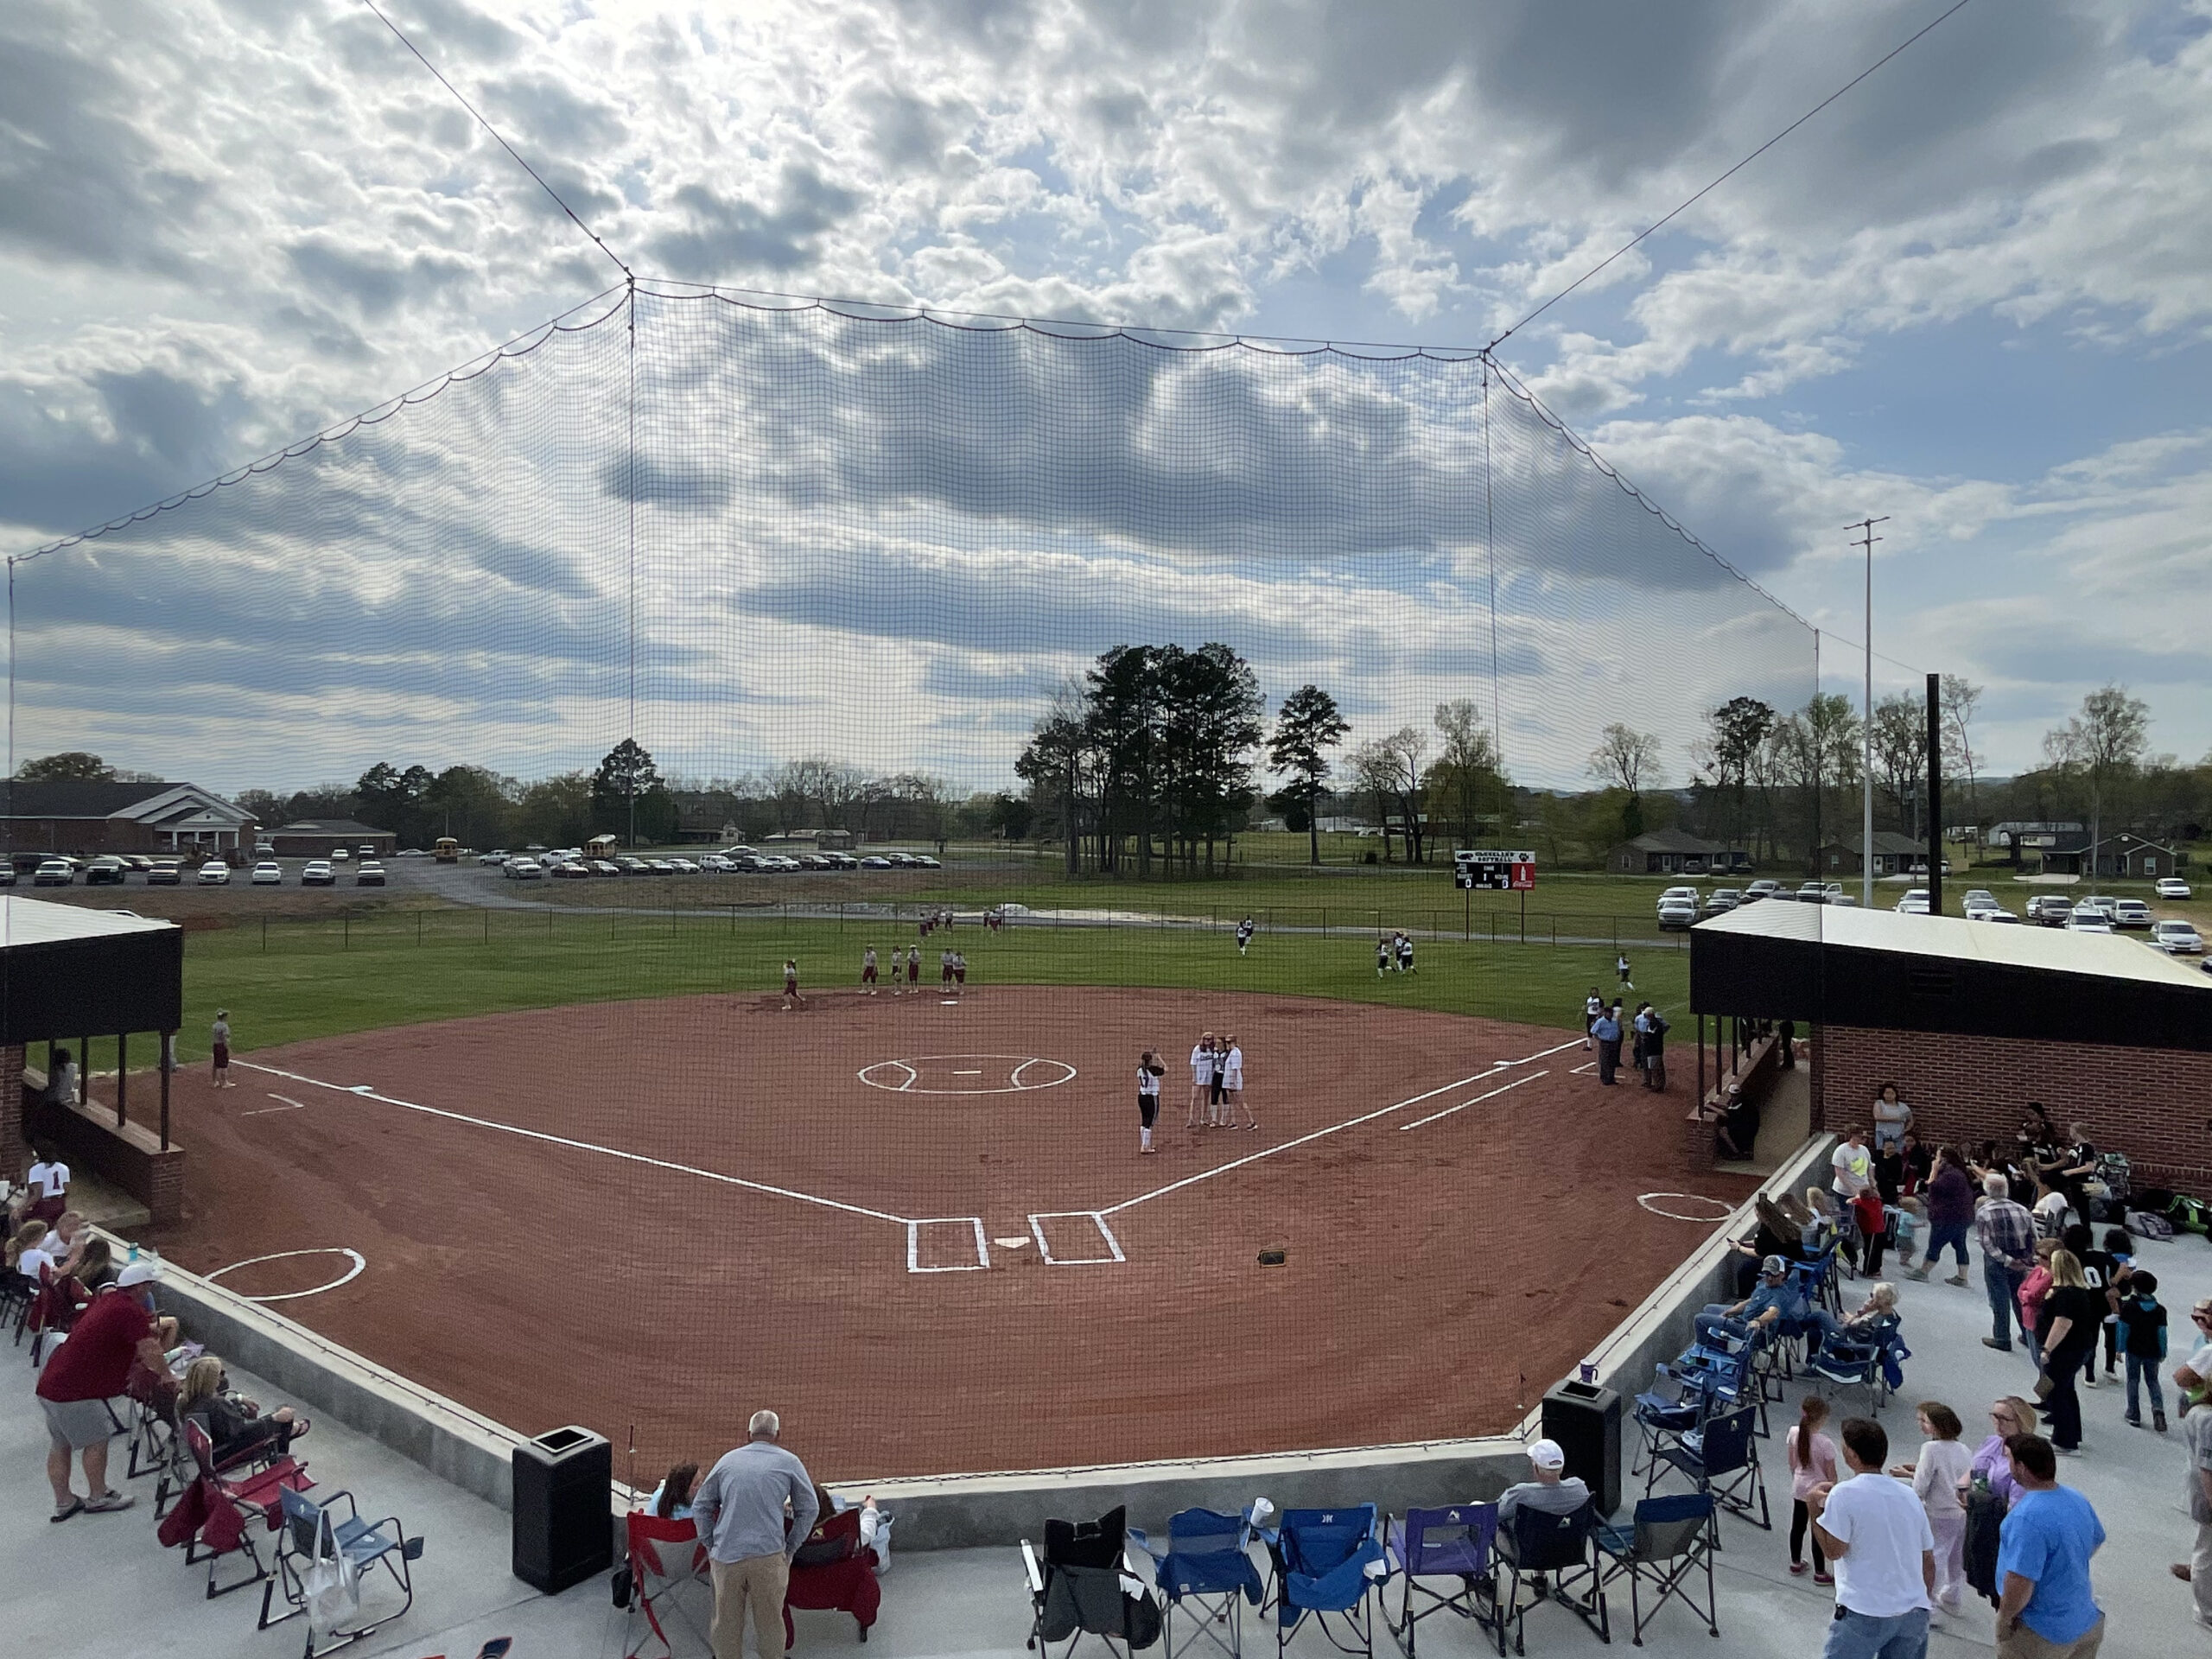 Cleveland's Lady Panther softball team got their first win on the new softball field Monday.